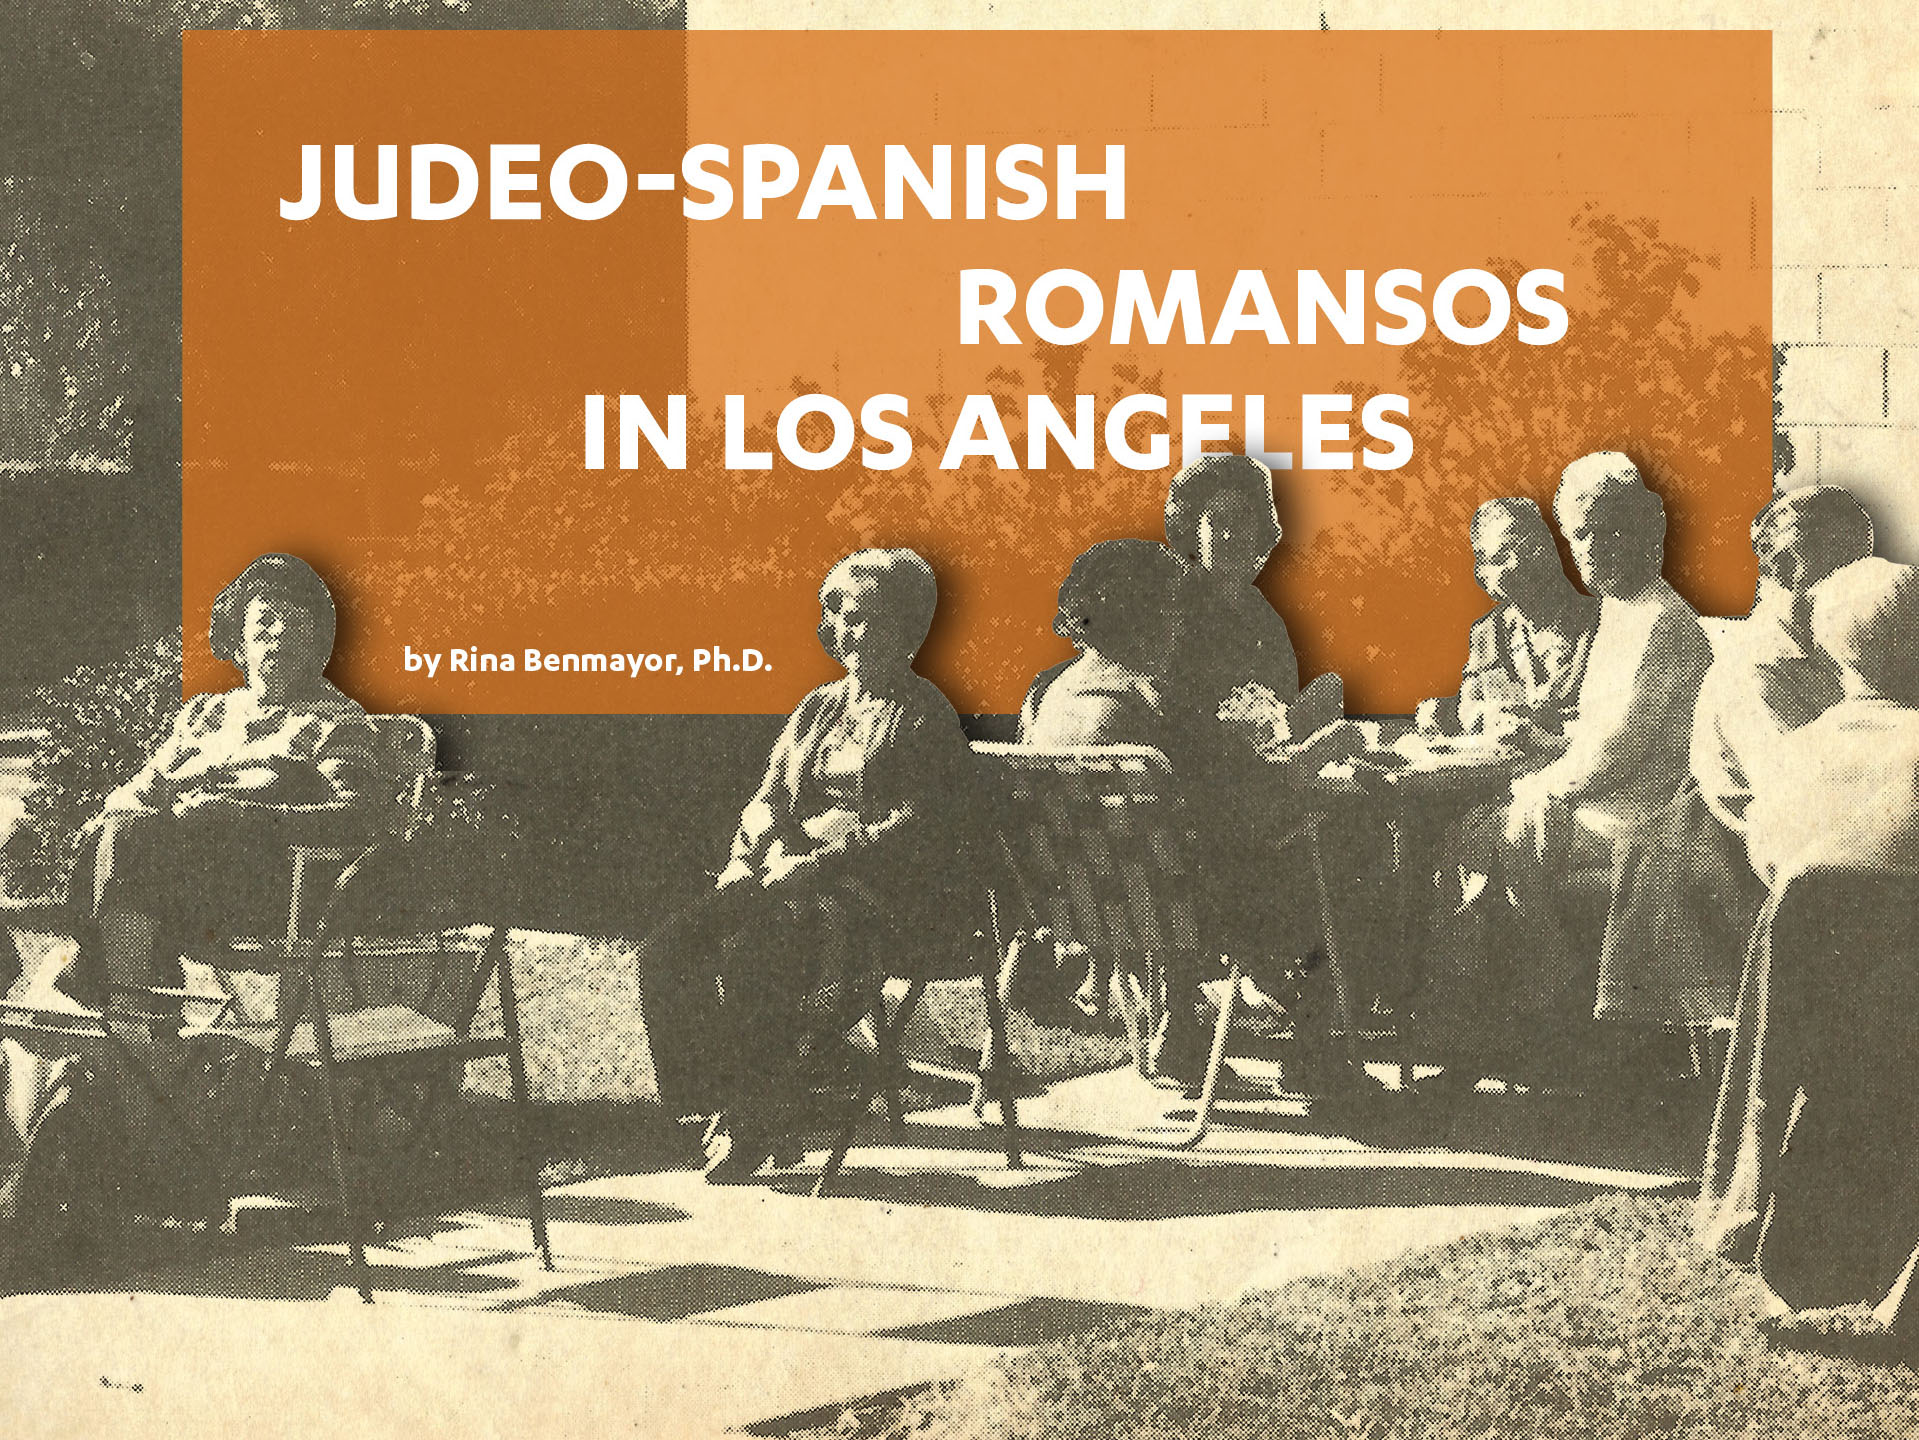 Judeo-Spanish Romansos in Los Angeles